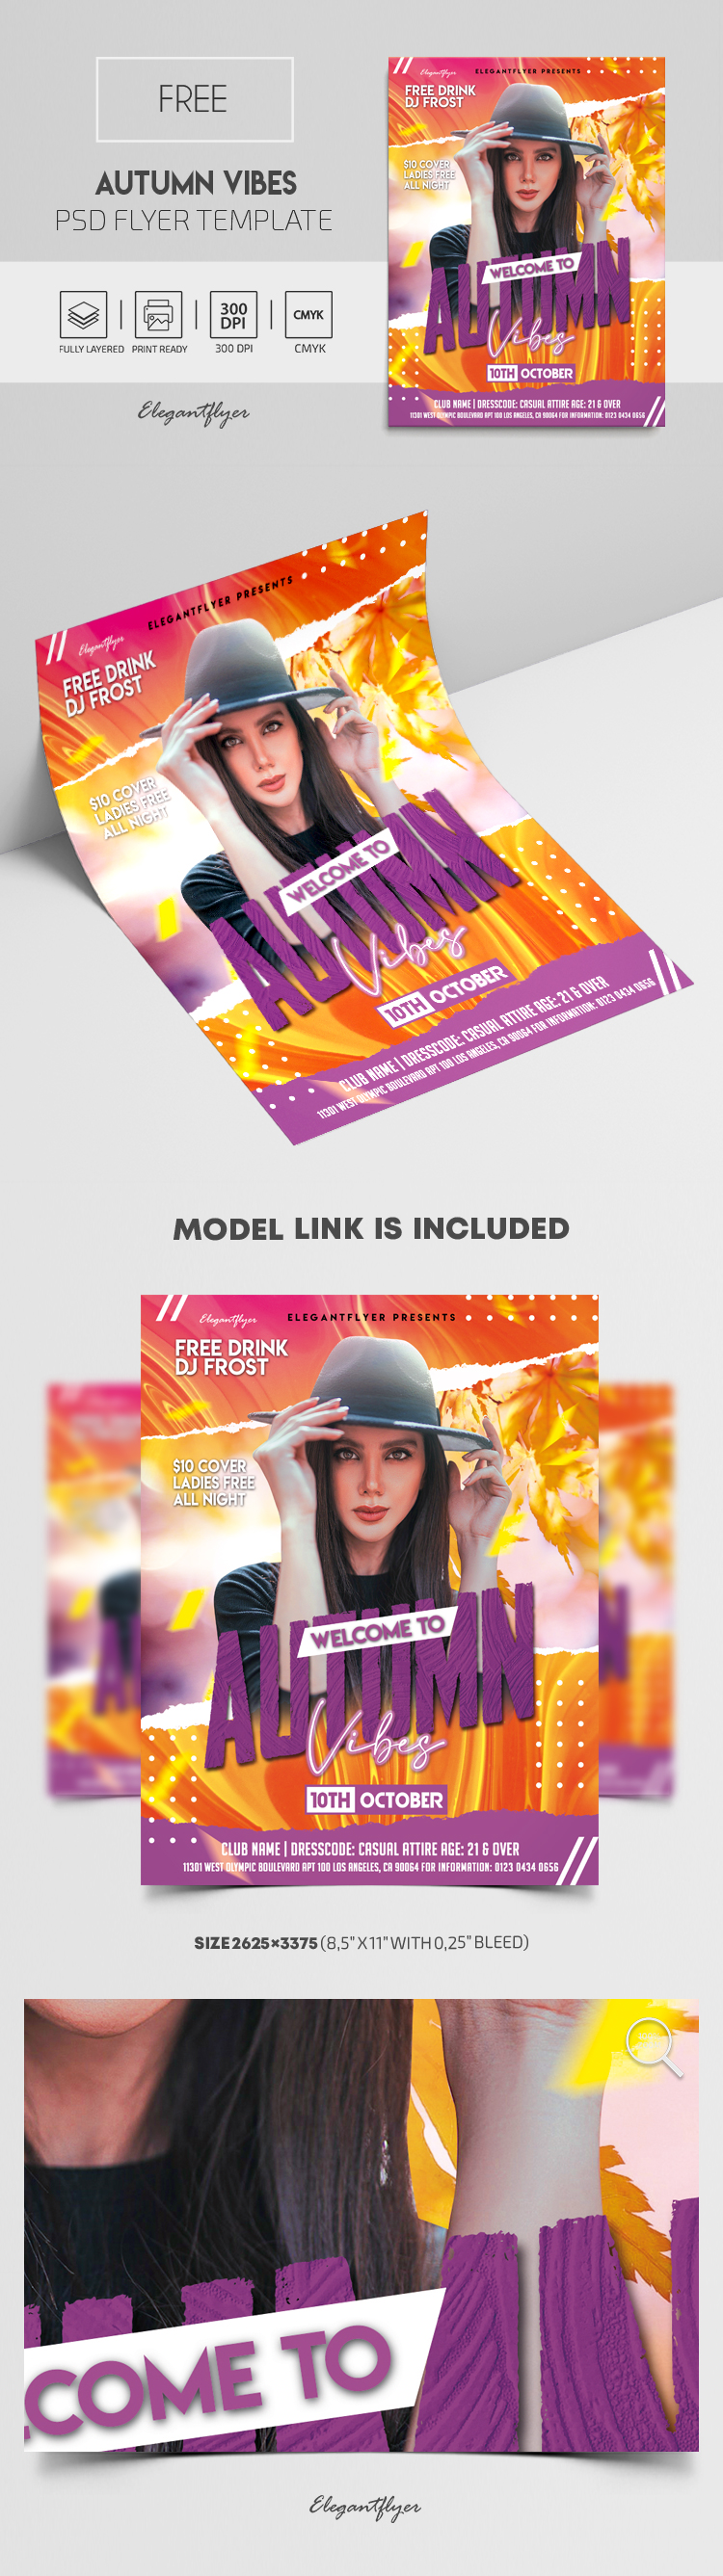 Autumn Vibes – Free Flyer PSD Template